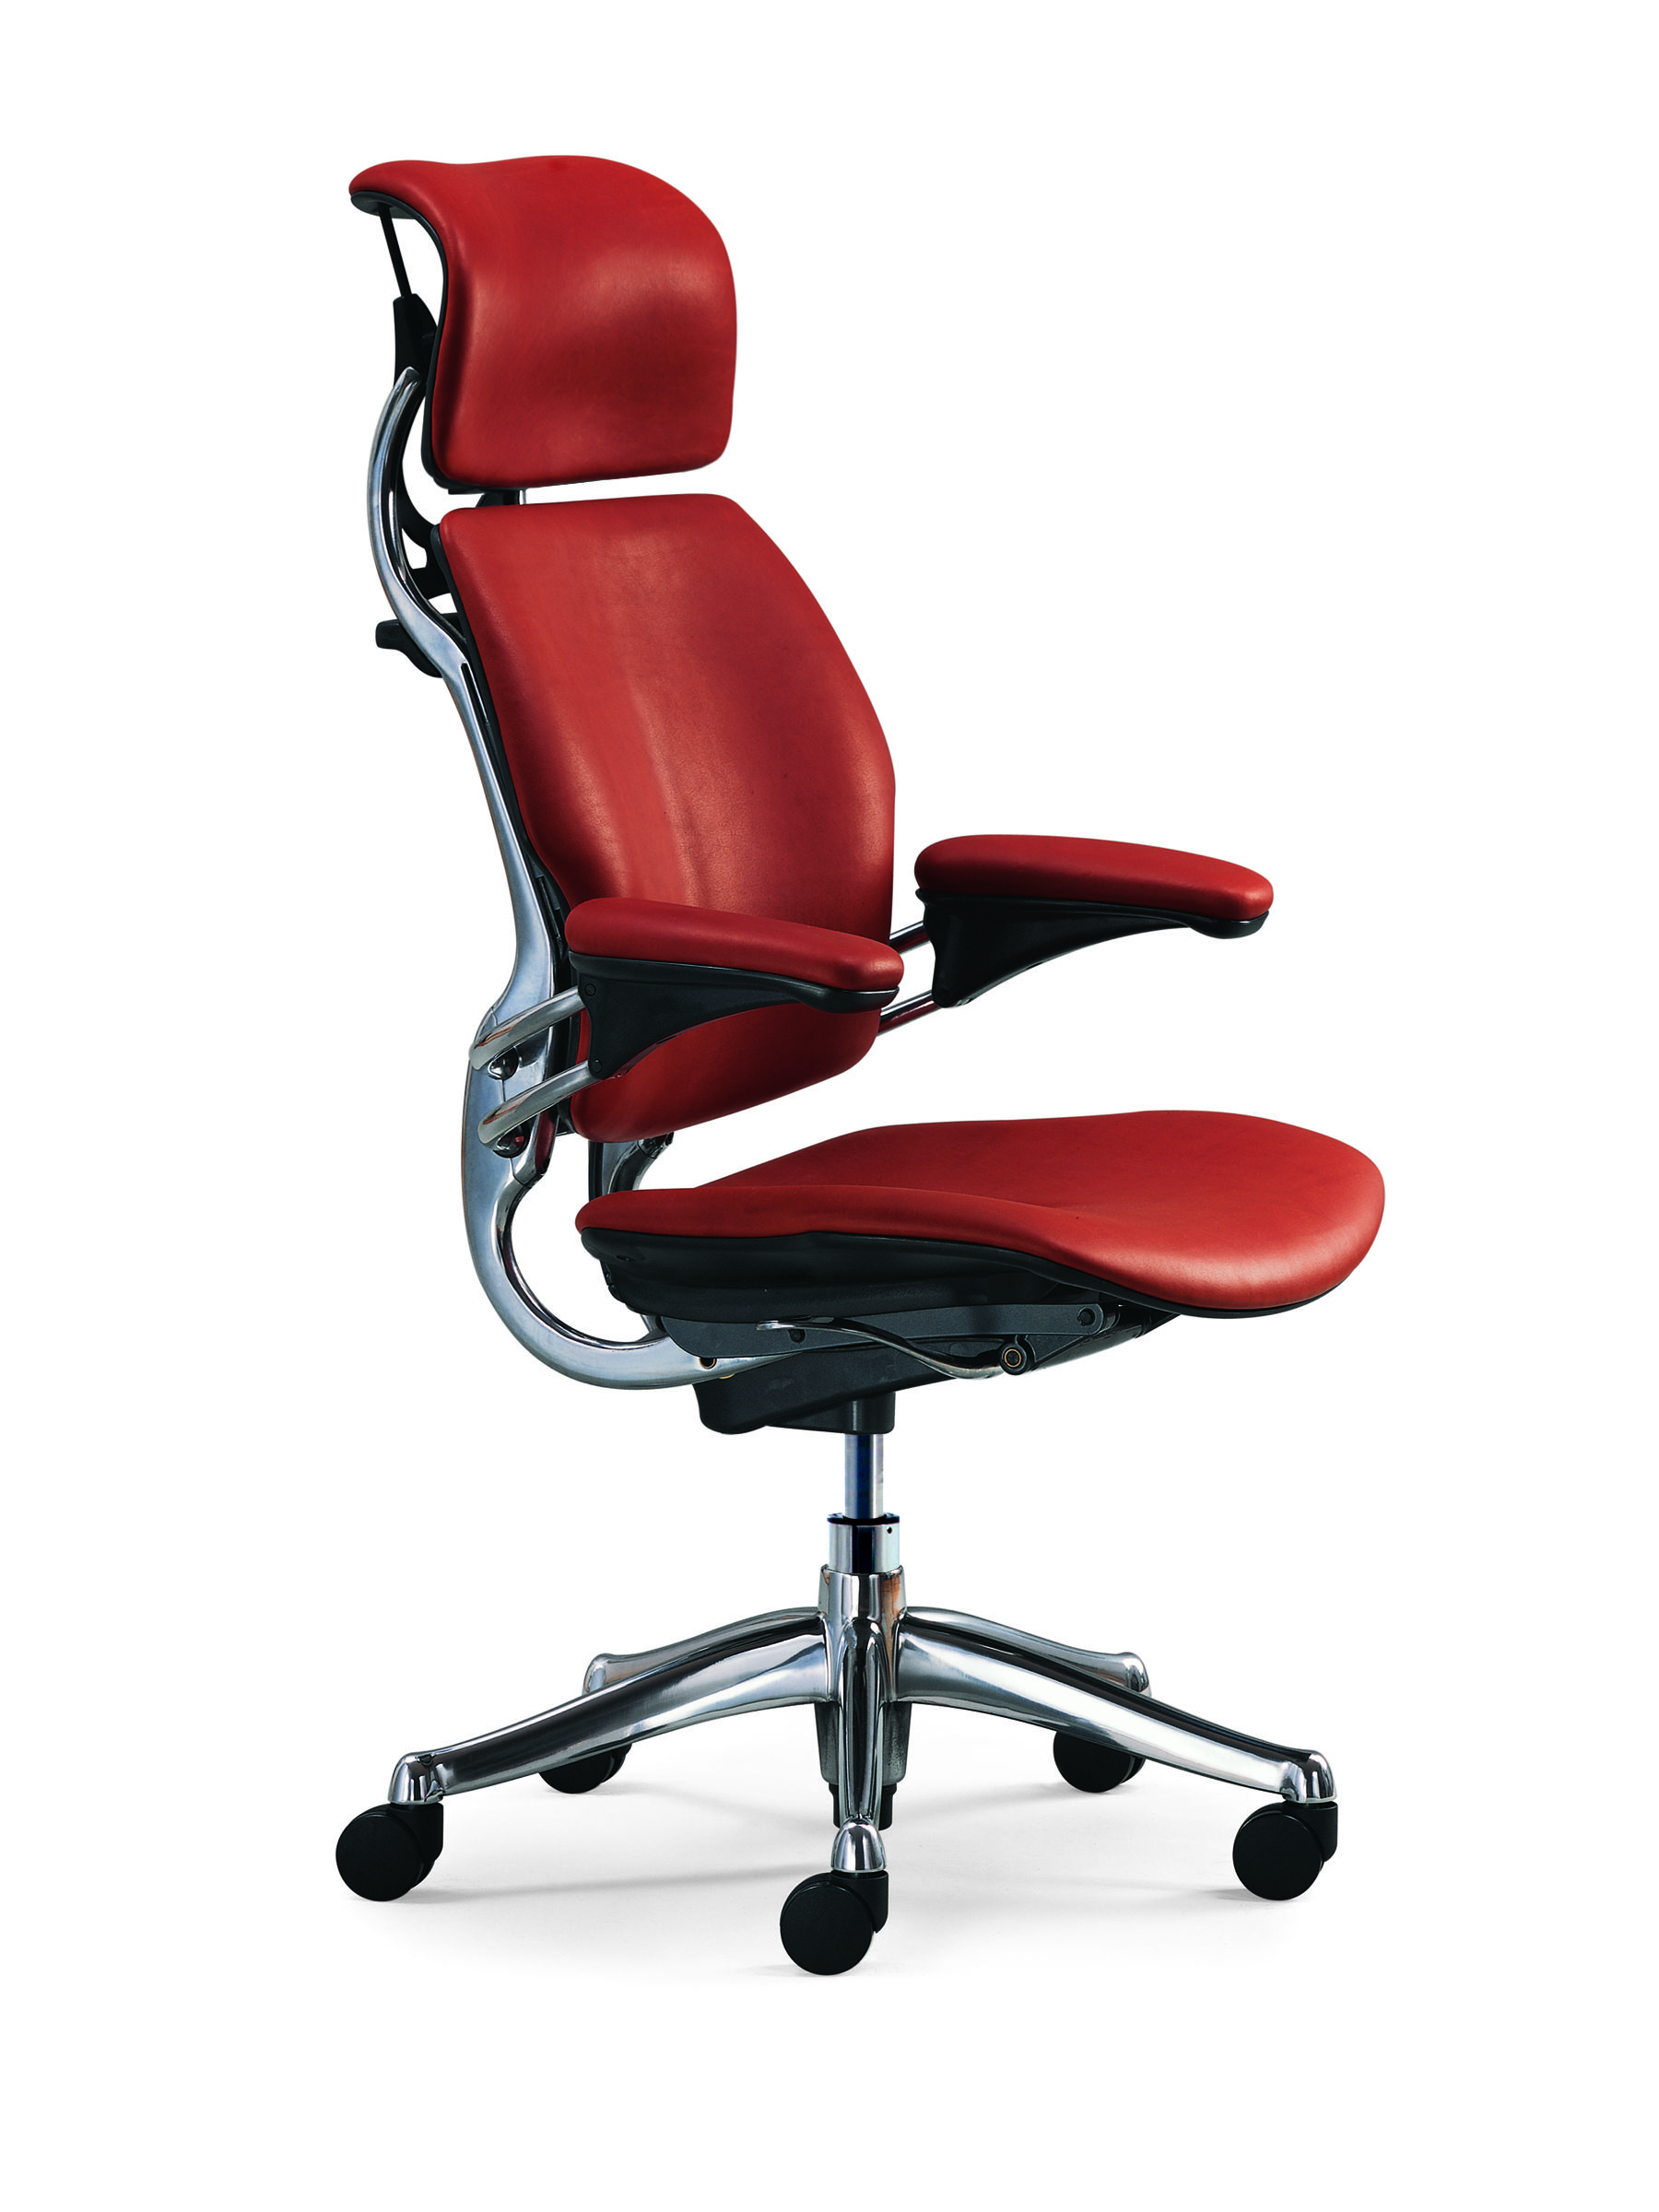 Freedom Headrest Humanscale Niels Diffrient Red Bright Product Photography Sty Leather Office Chair Most Comfortable Office Chair Best Office Chair